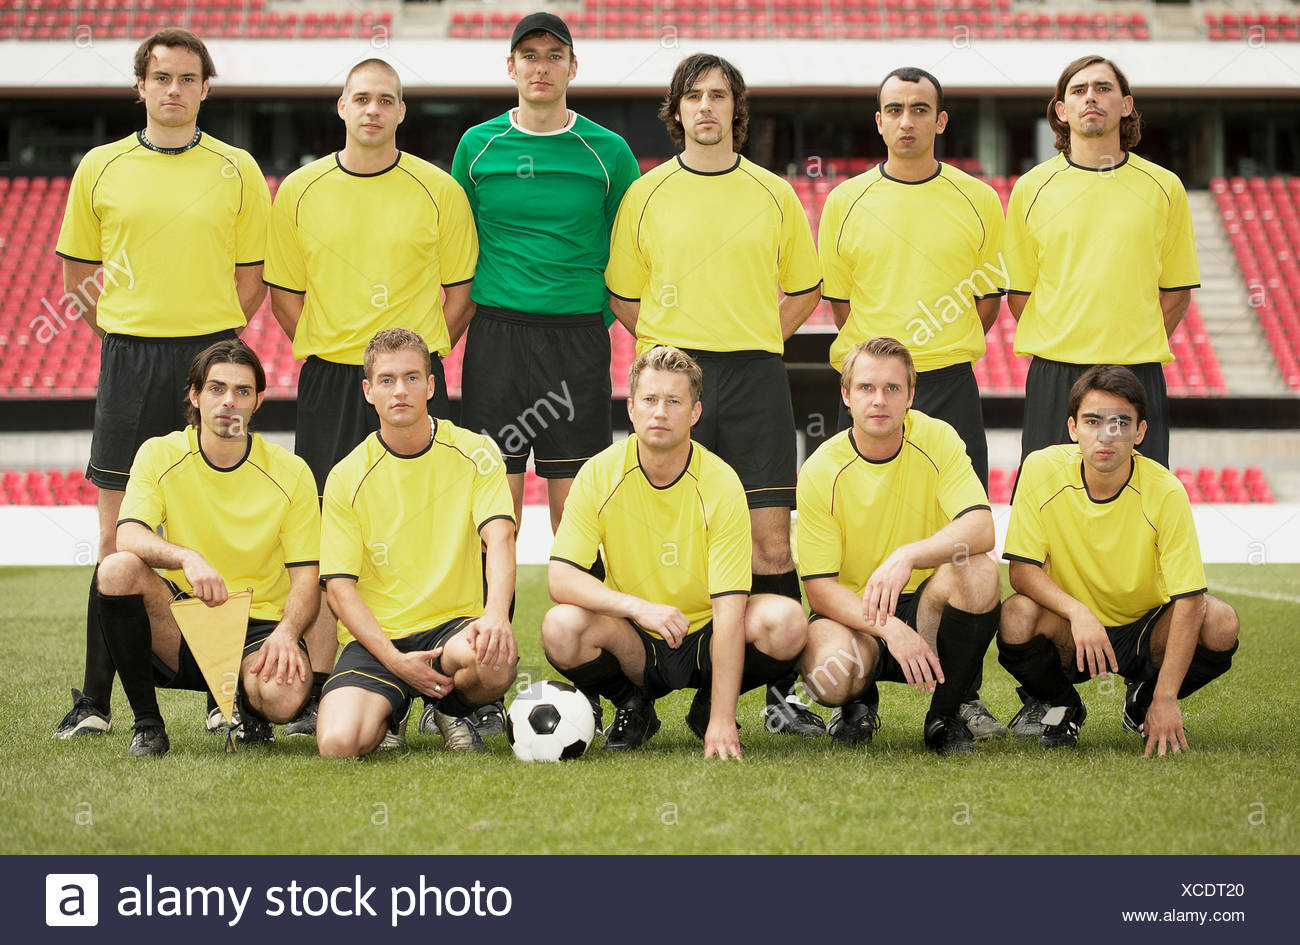 Football team in yellow - Stock Image